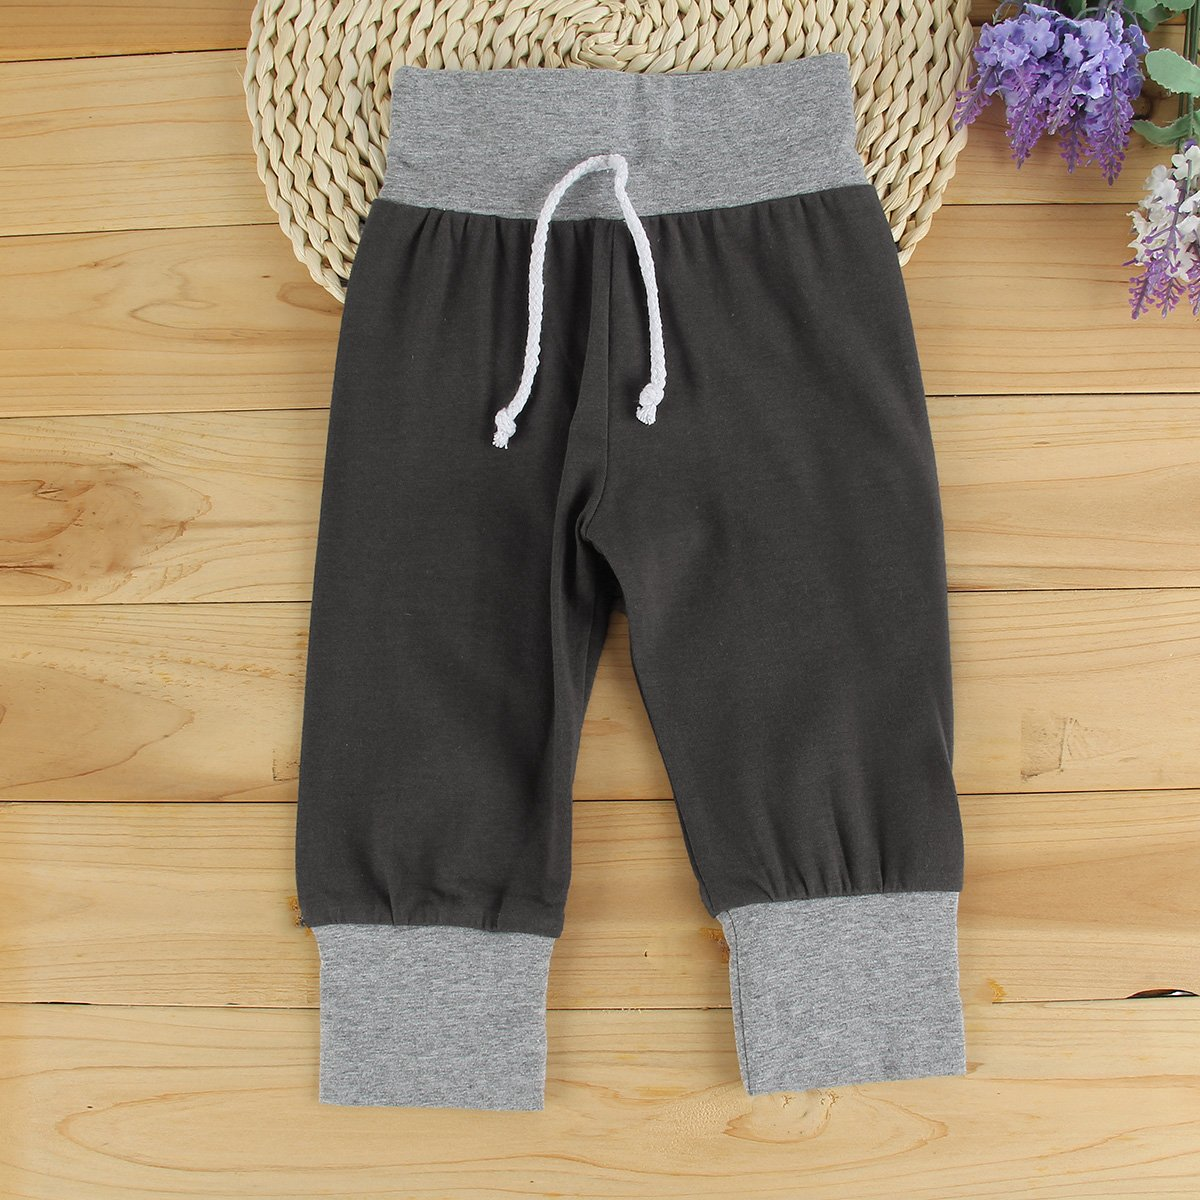 Puseky Baby Boys Grils Striped Hooded Sweatshirt /& Pants Tracksuit Outfits Set 18-24 Months, Grey